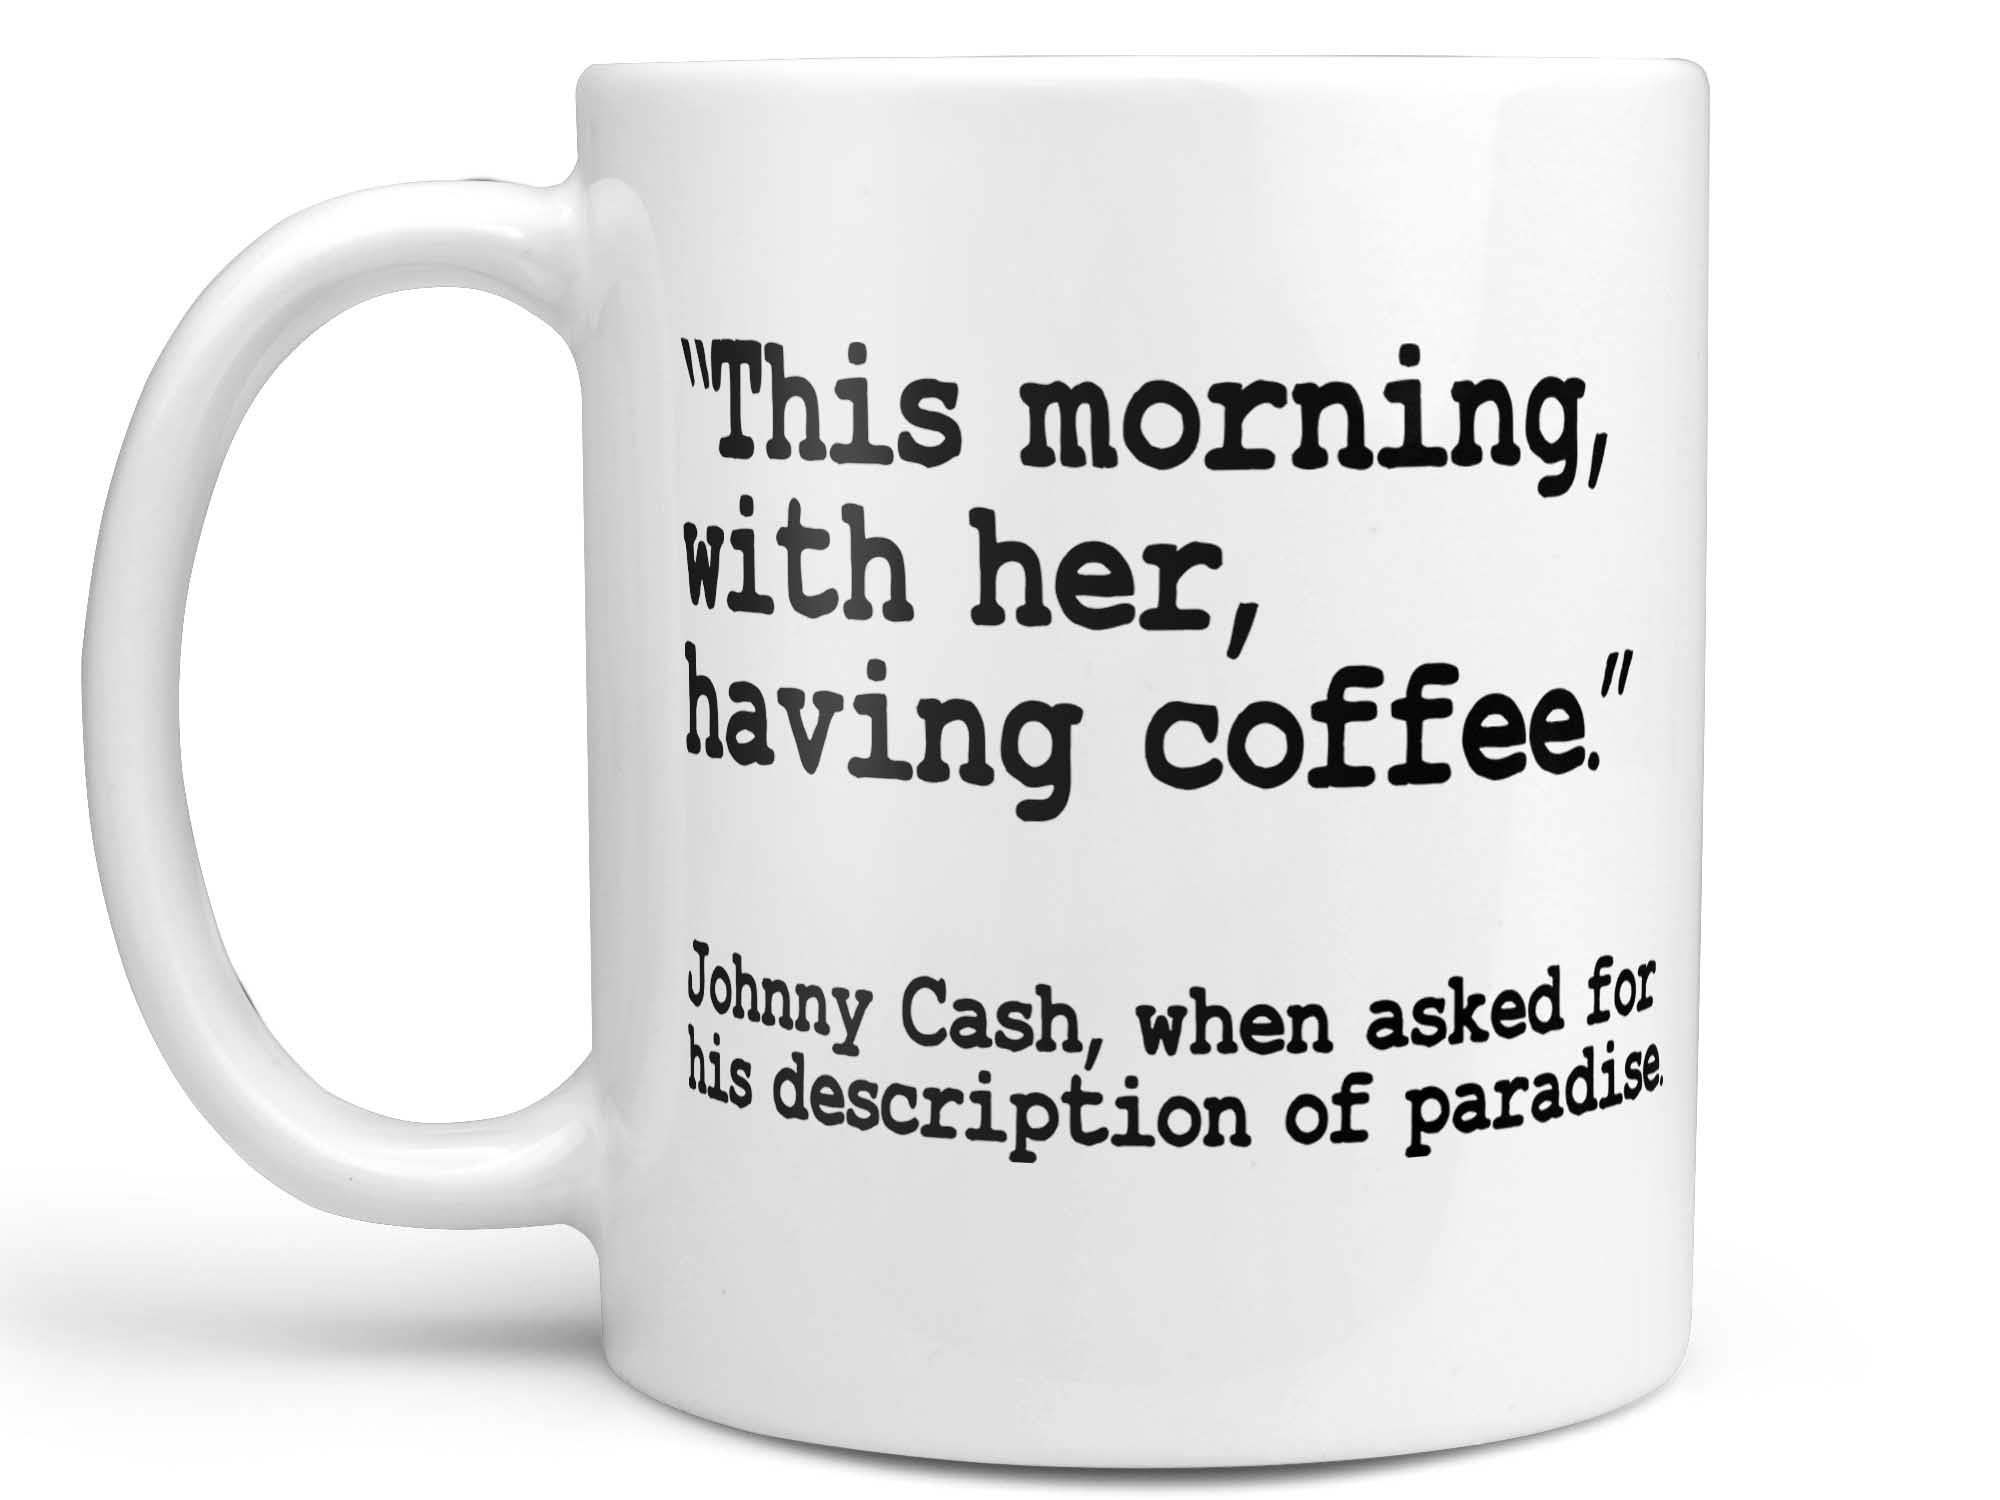 Johnny Cash Coffee Mug